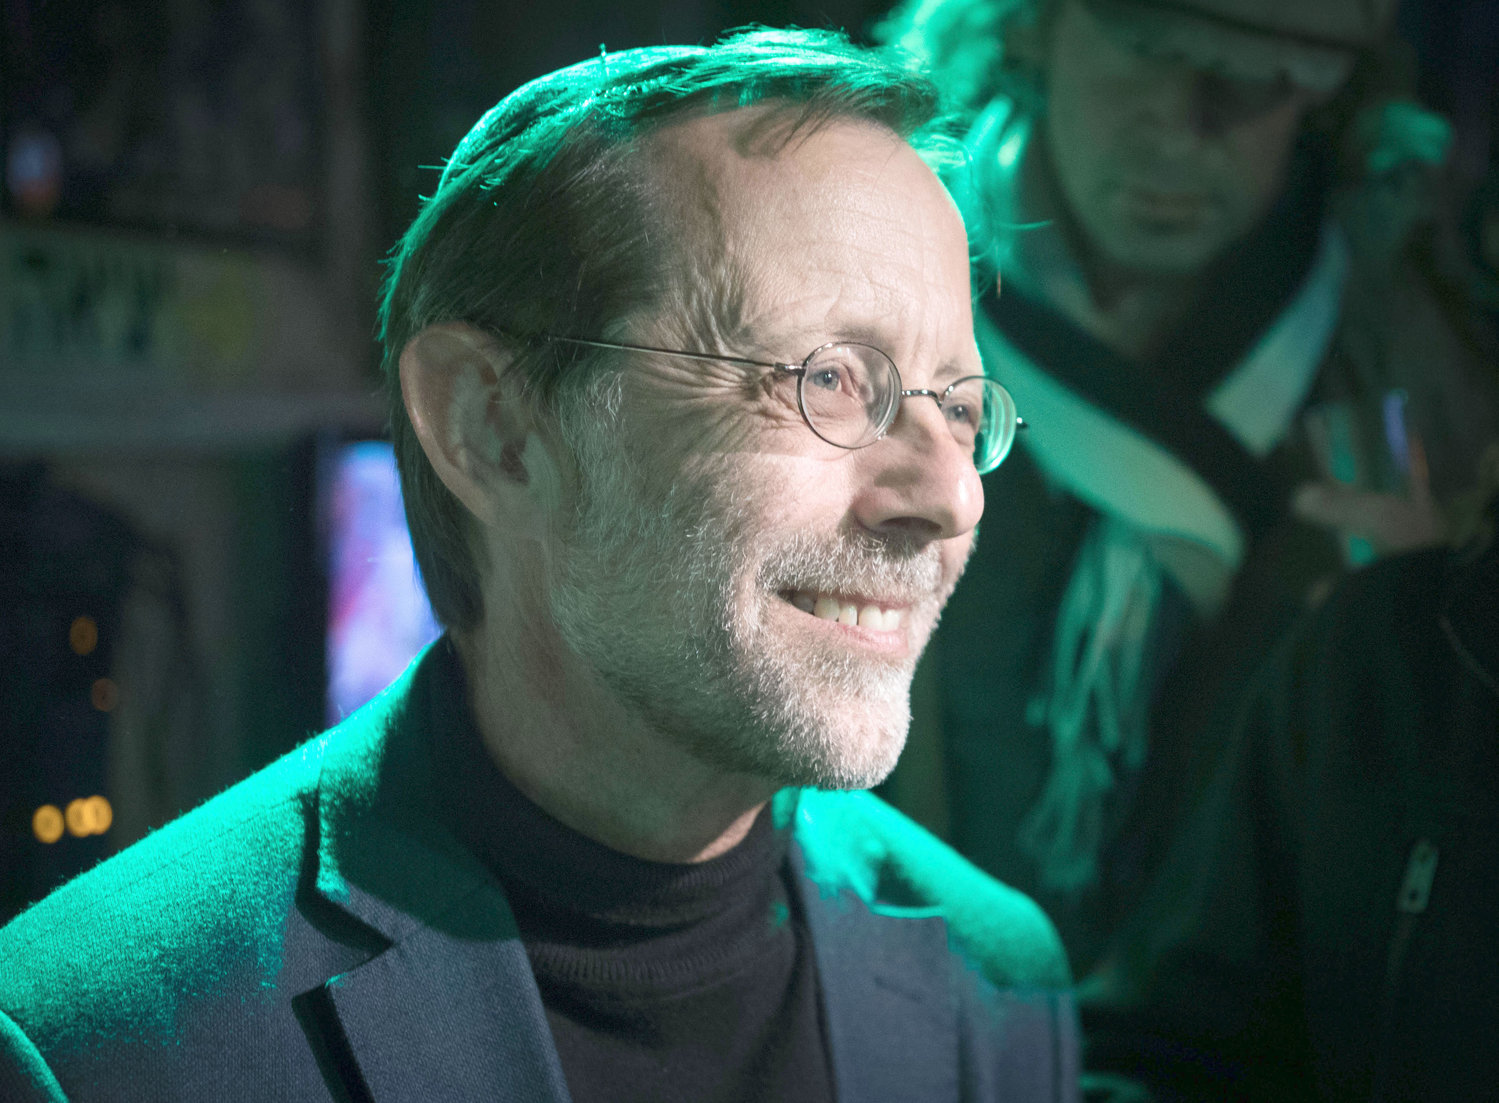 Moshe Feiglin, head of the Zehut oolitical party.